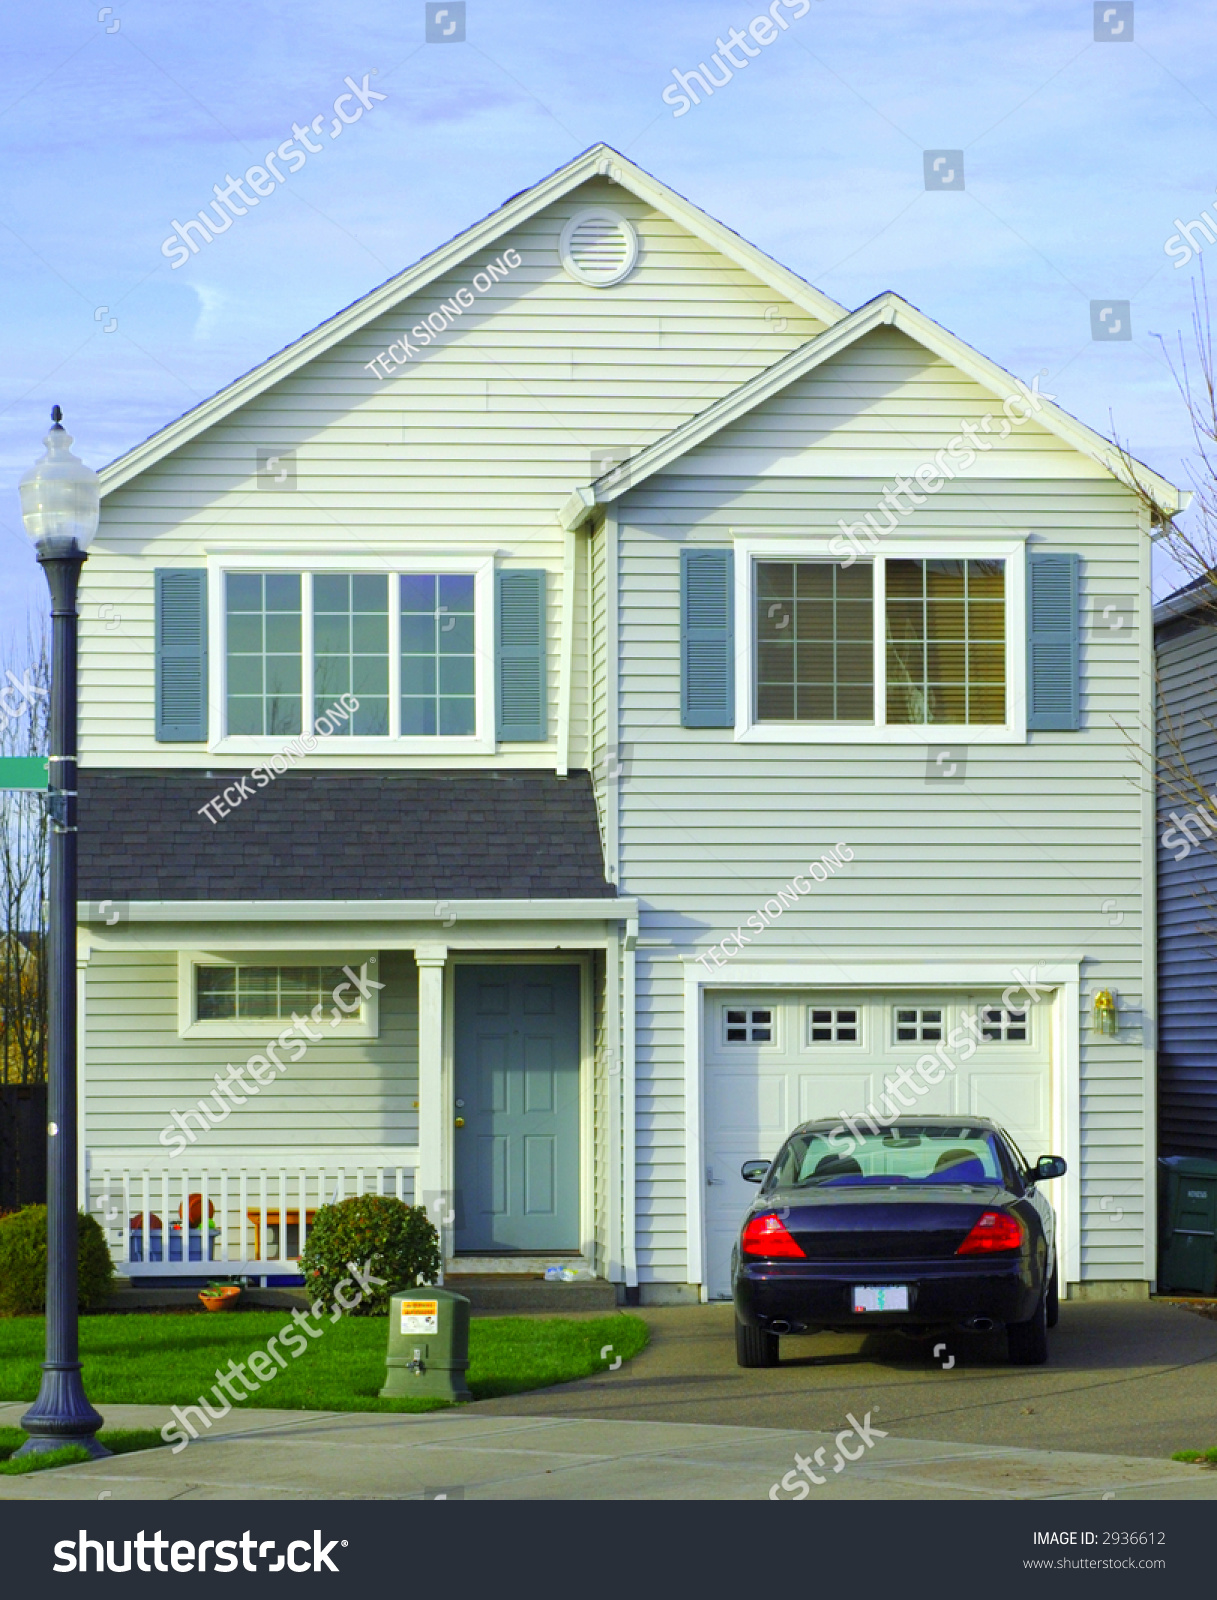 Front View House Car Parking Stock Photo 2936612 Shutterstock